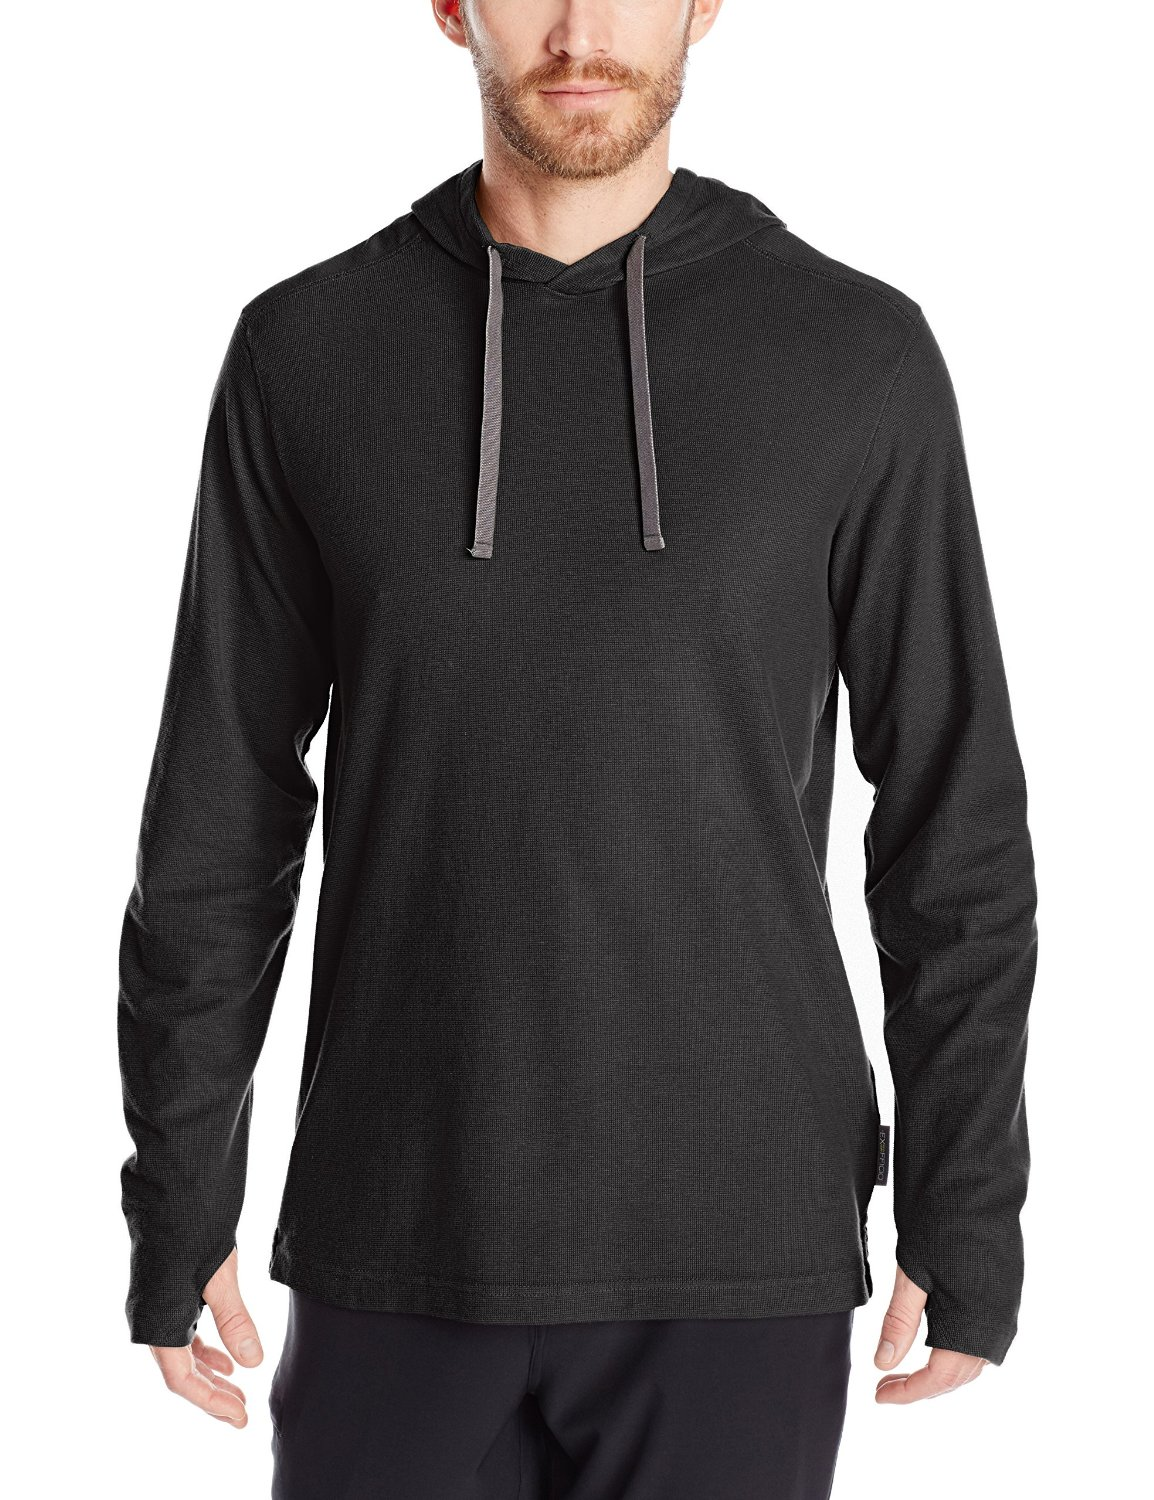 mosquito-repellent-clothes-mens-hoody